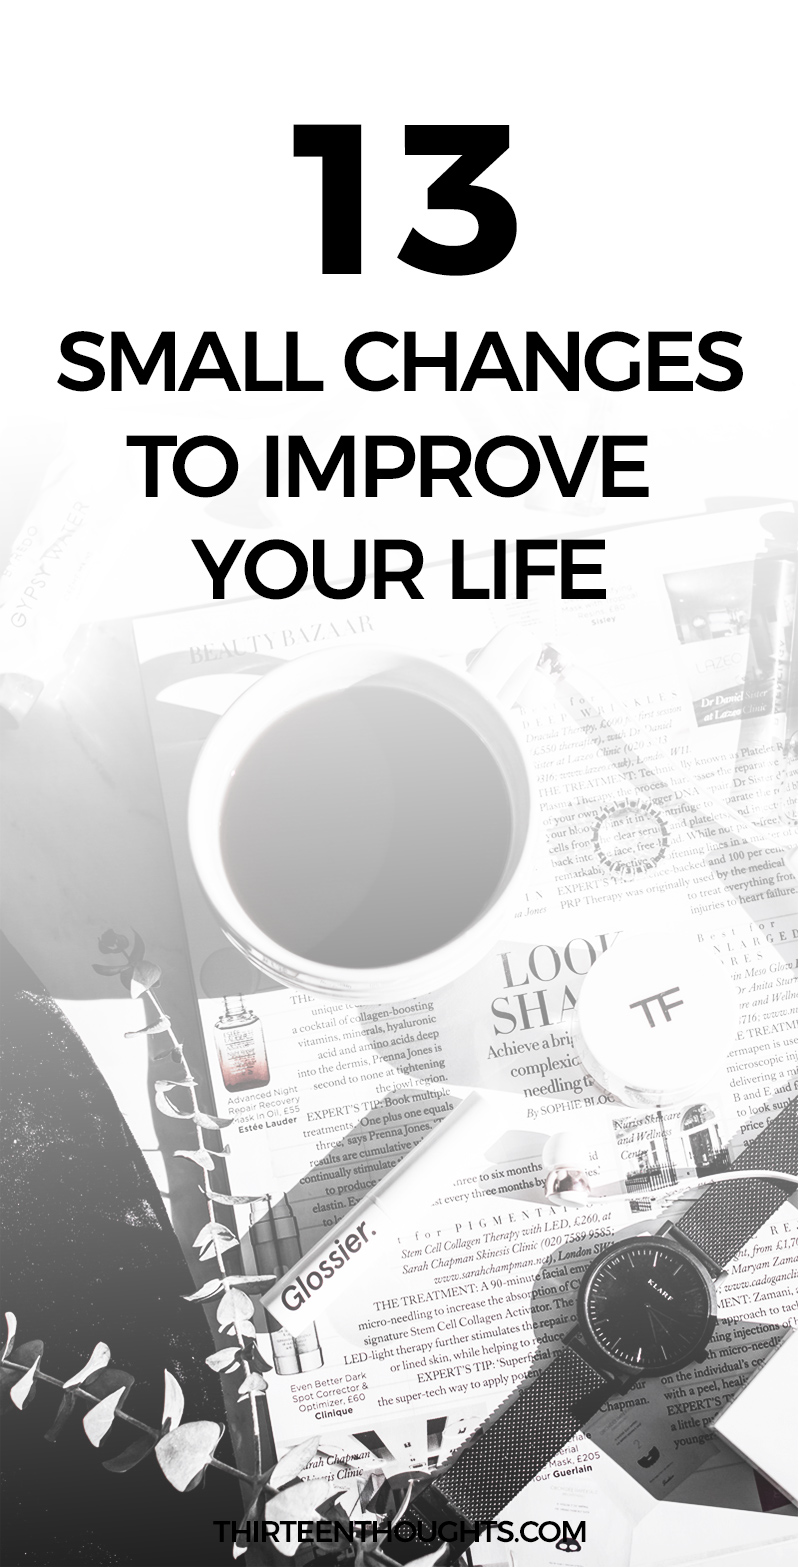 Small Changes to Improve Your Life